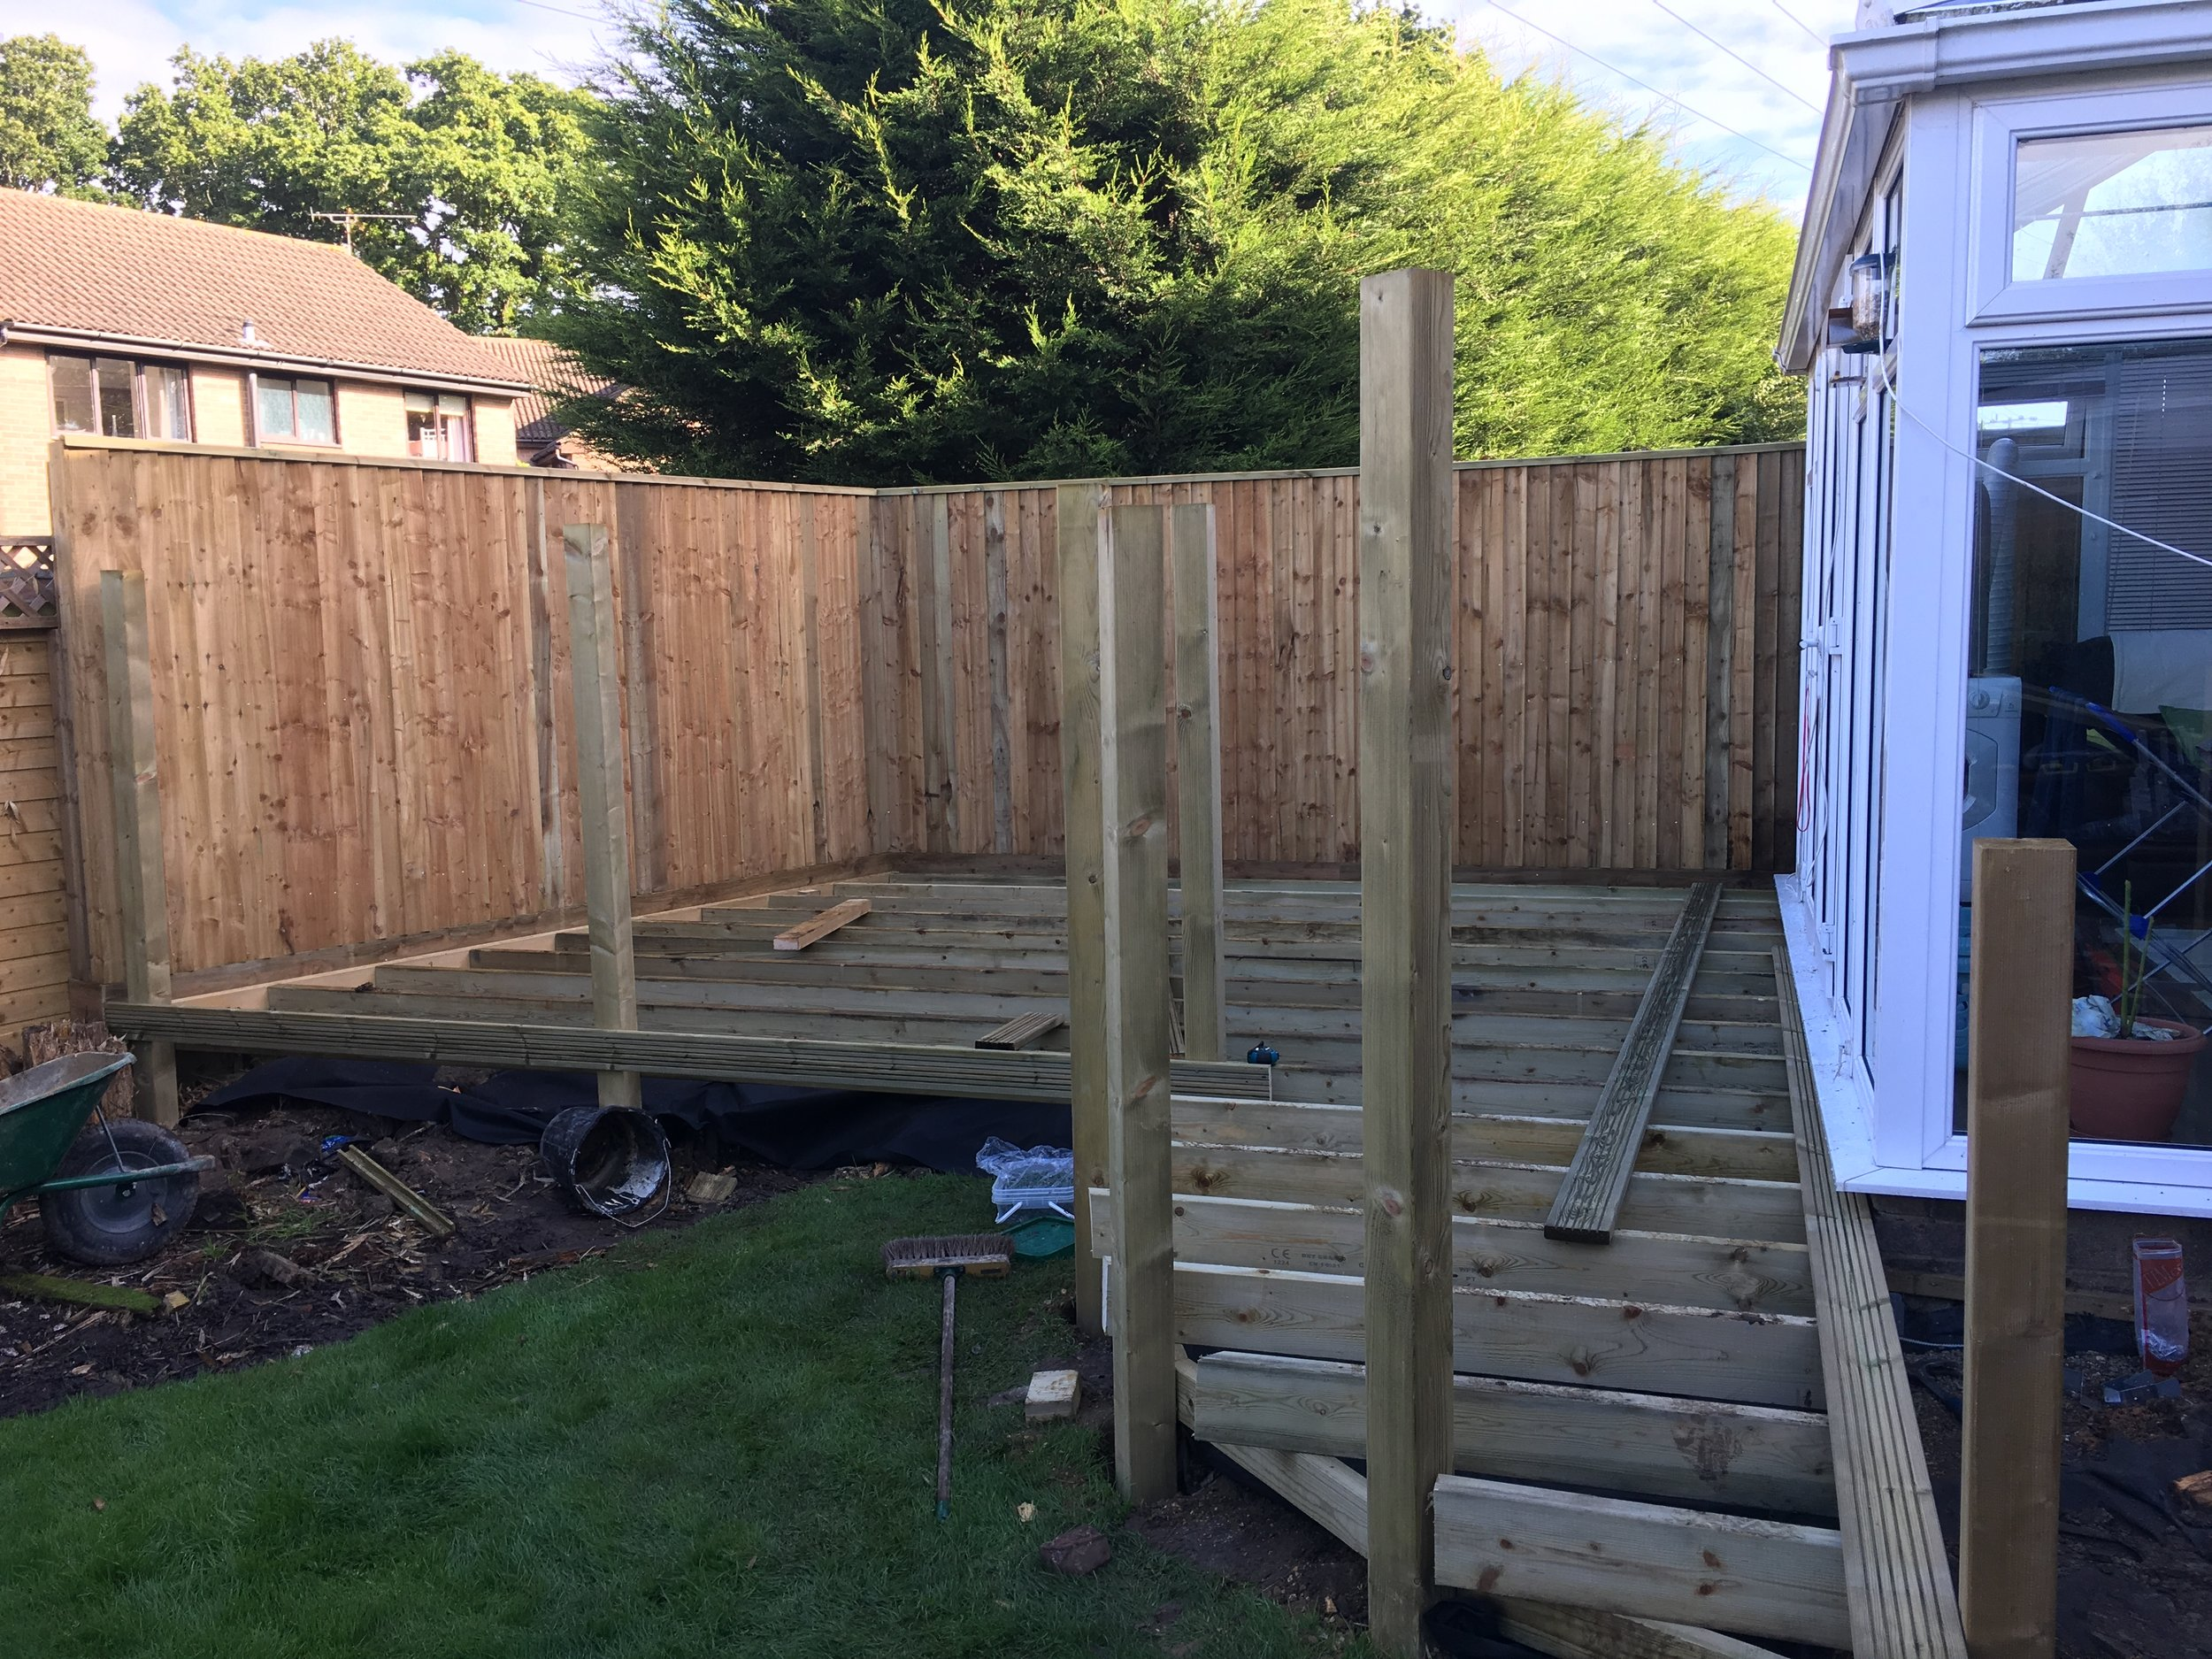 Our frame in place, there are 6 inch sub joists supported from concrete posts sitting underneath the main frame giving extra strength.